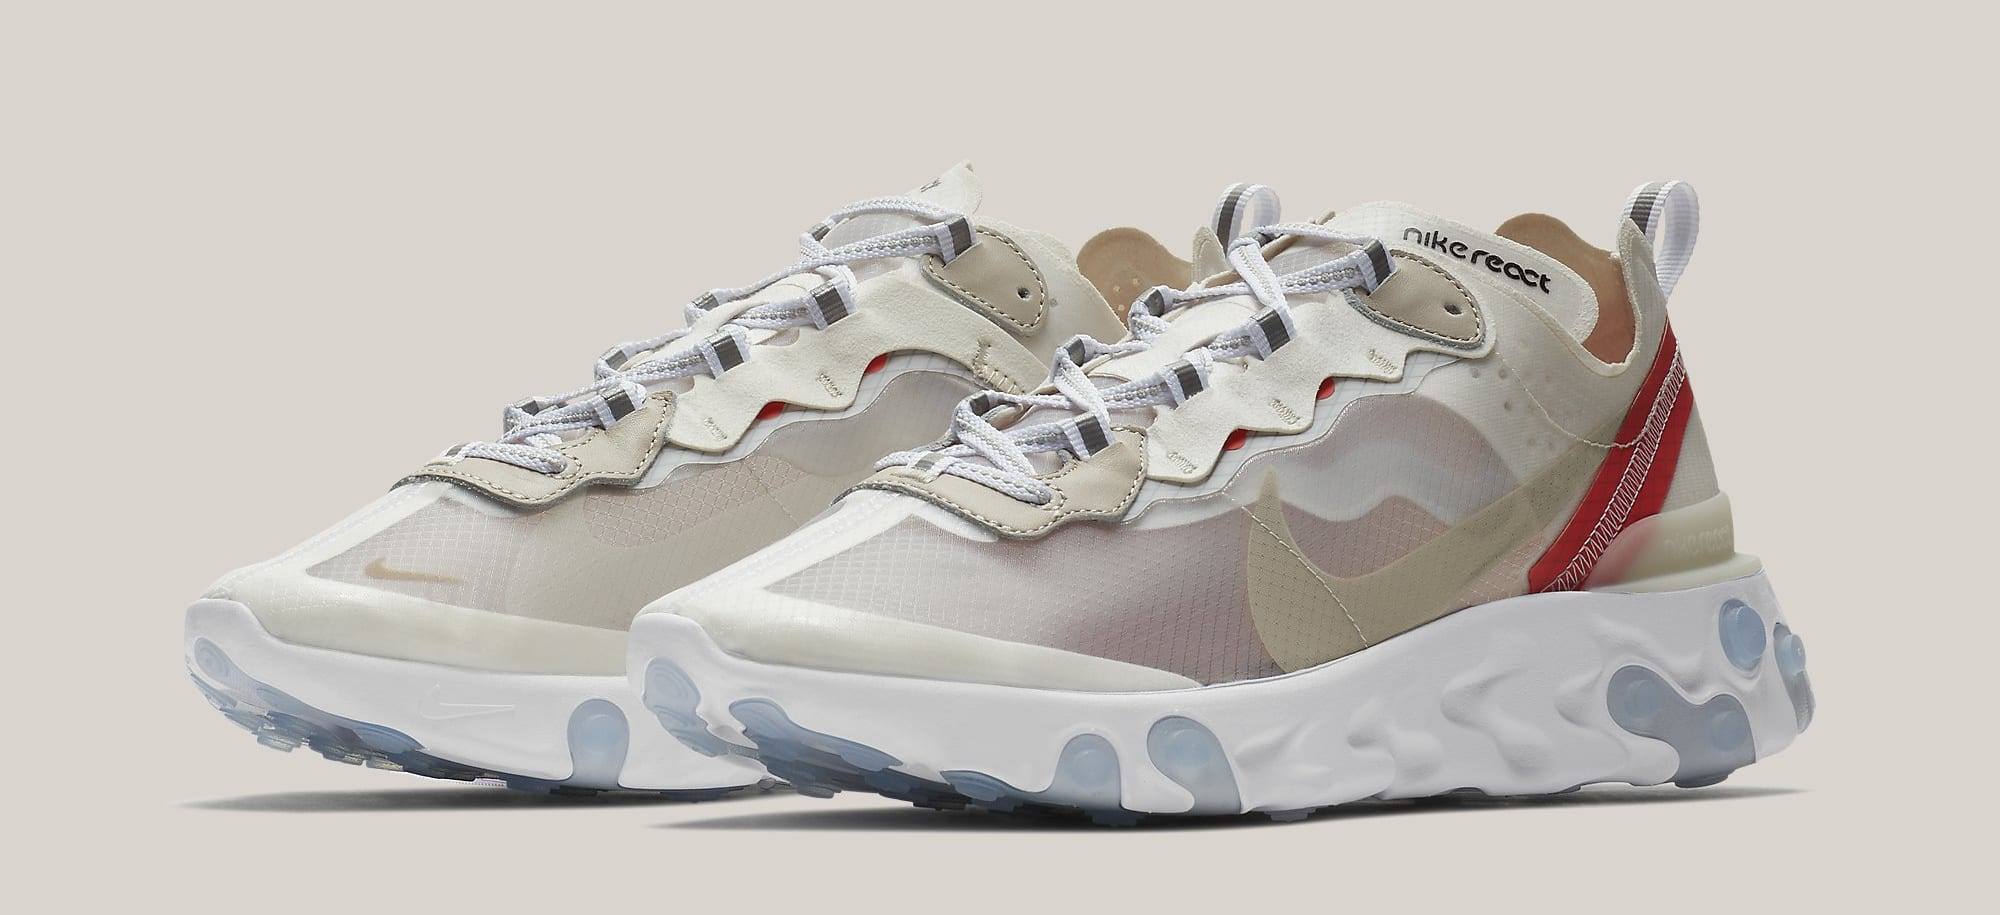 ddb41880db4d13 great site for all sneakers 50% off nike react element - vietola.com